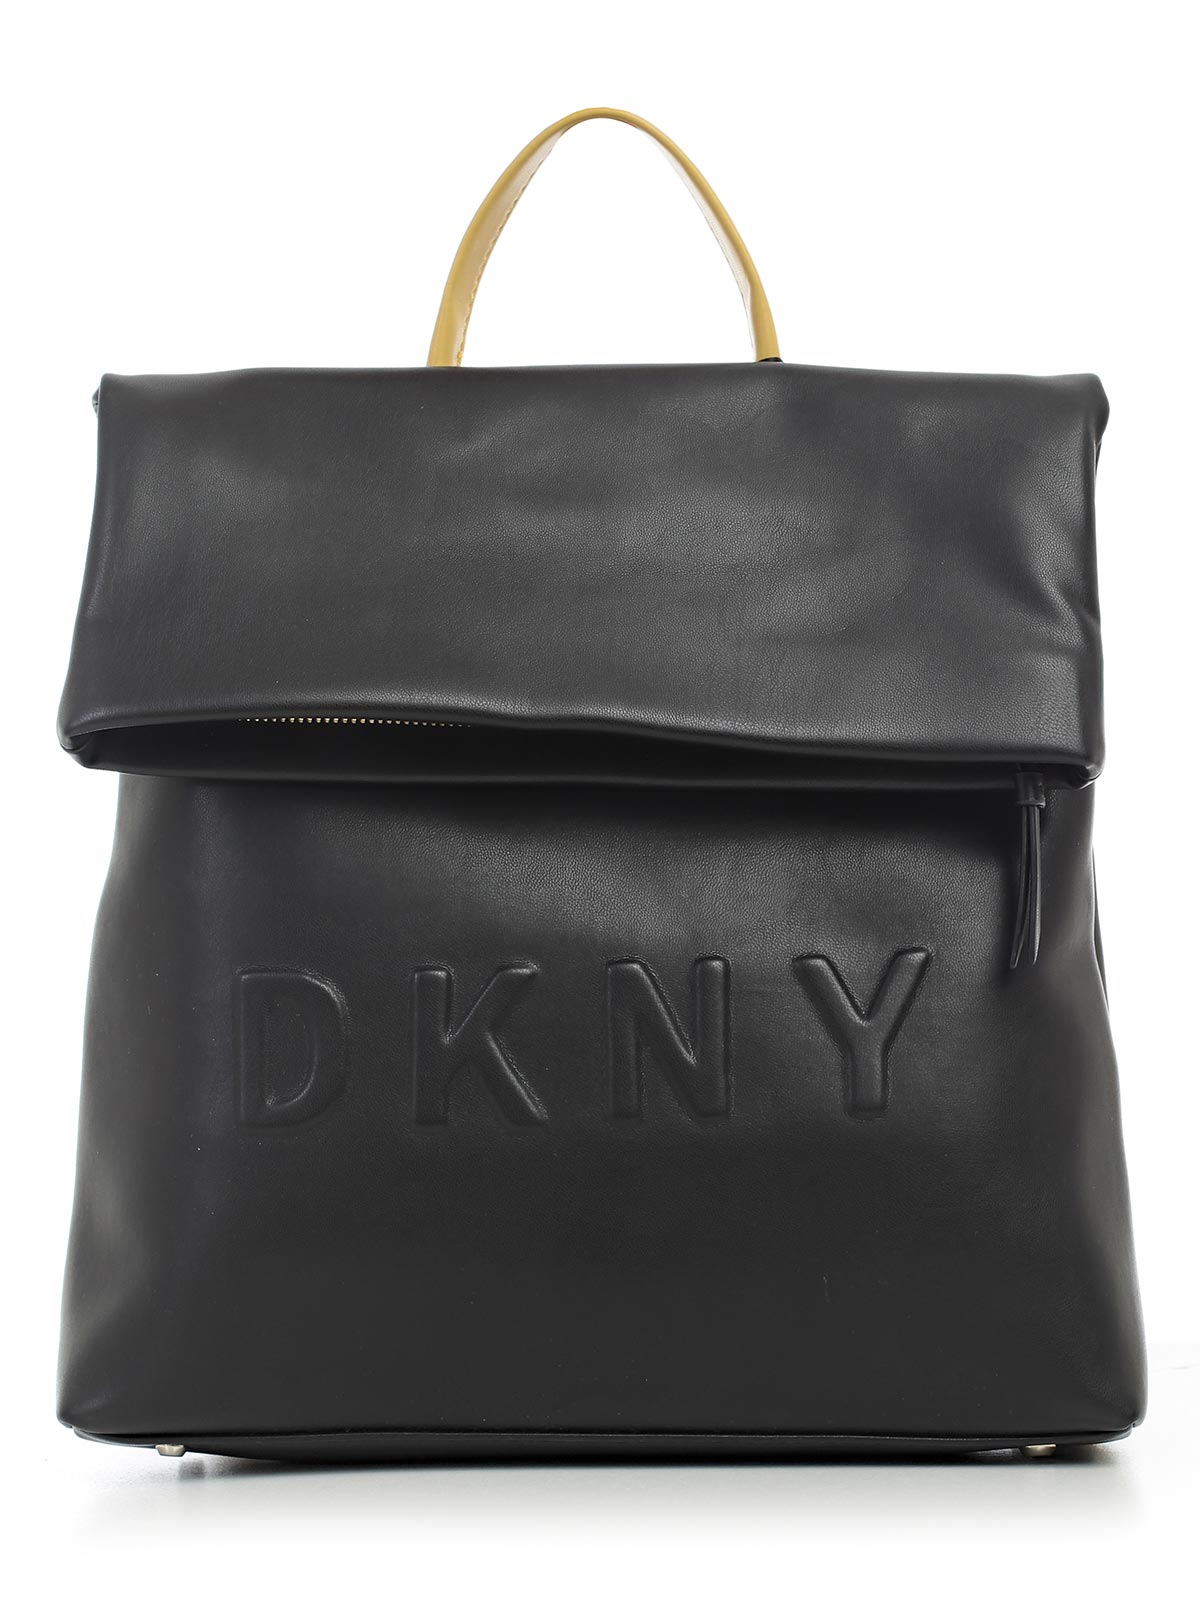 Picture of Dkny Backpack